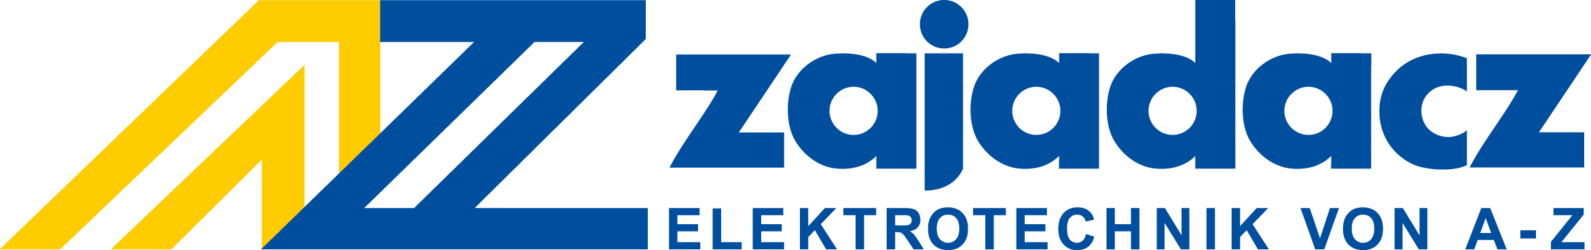 Zajadacz – wholesaler for electrical engineering